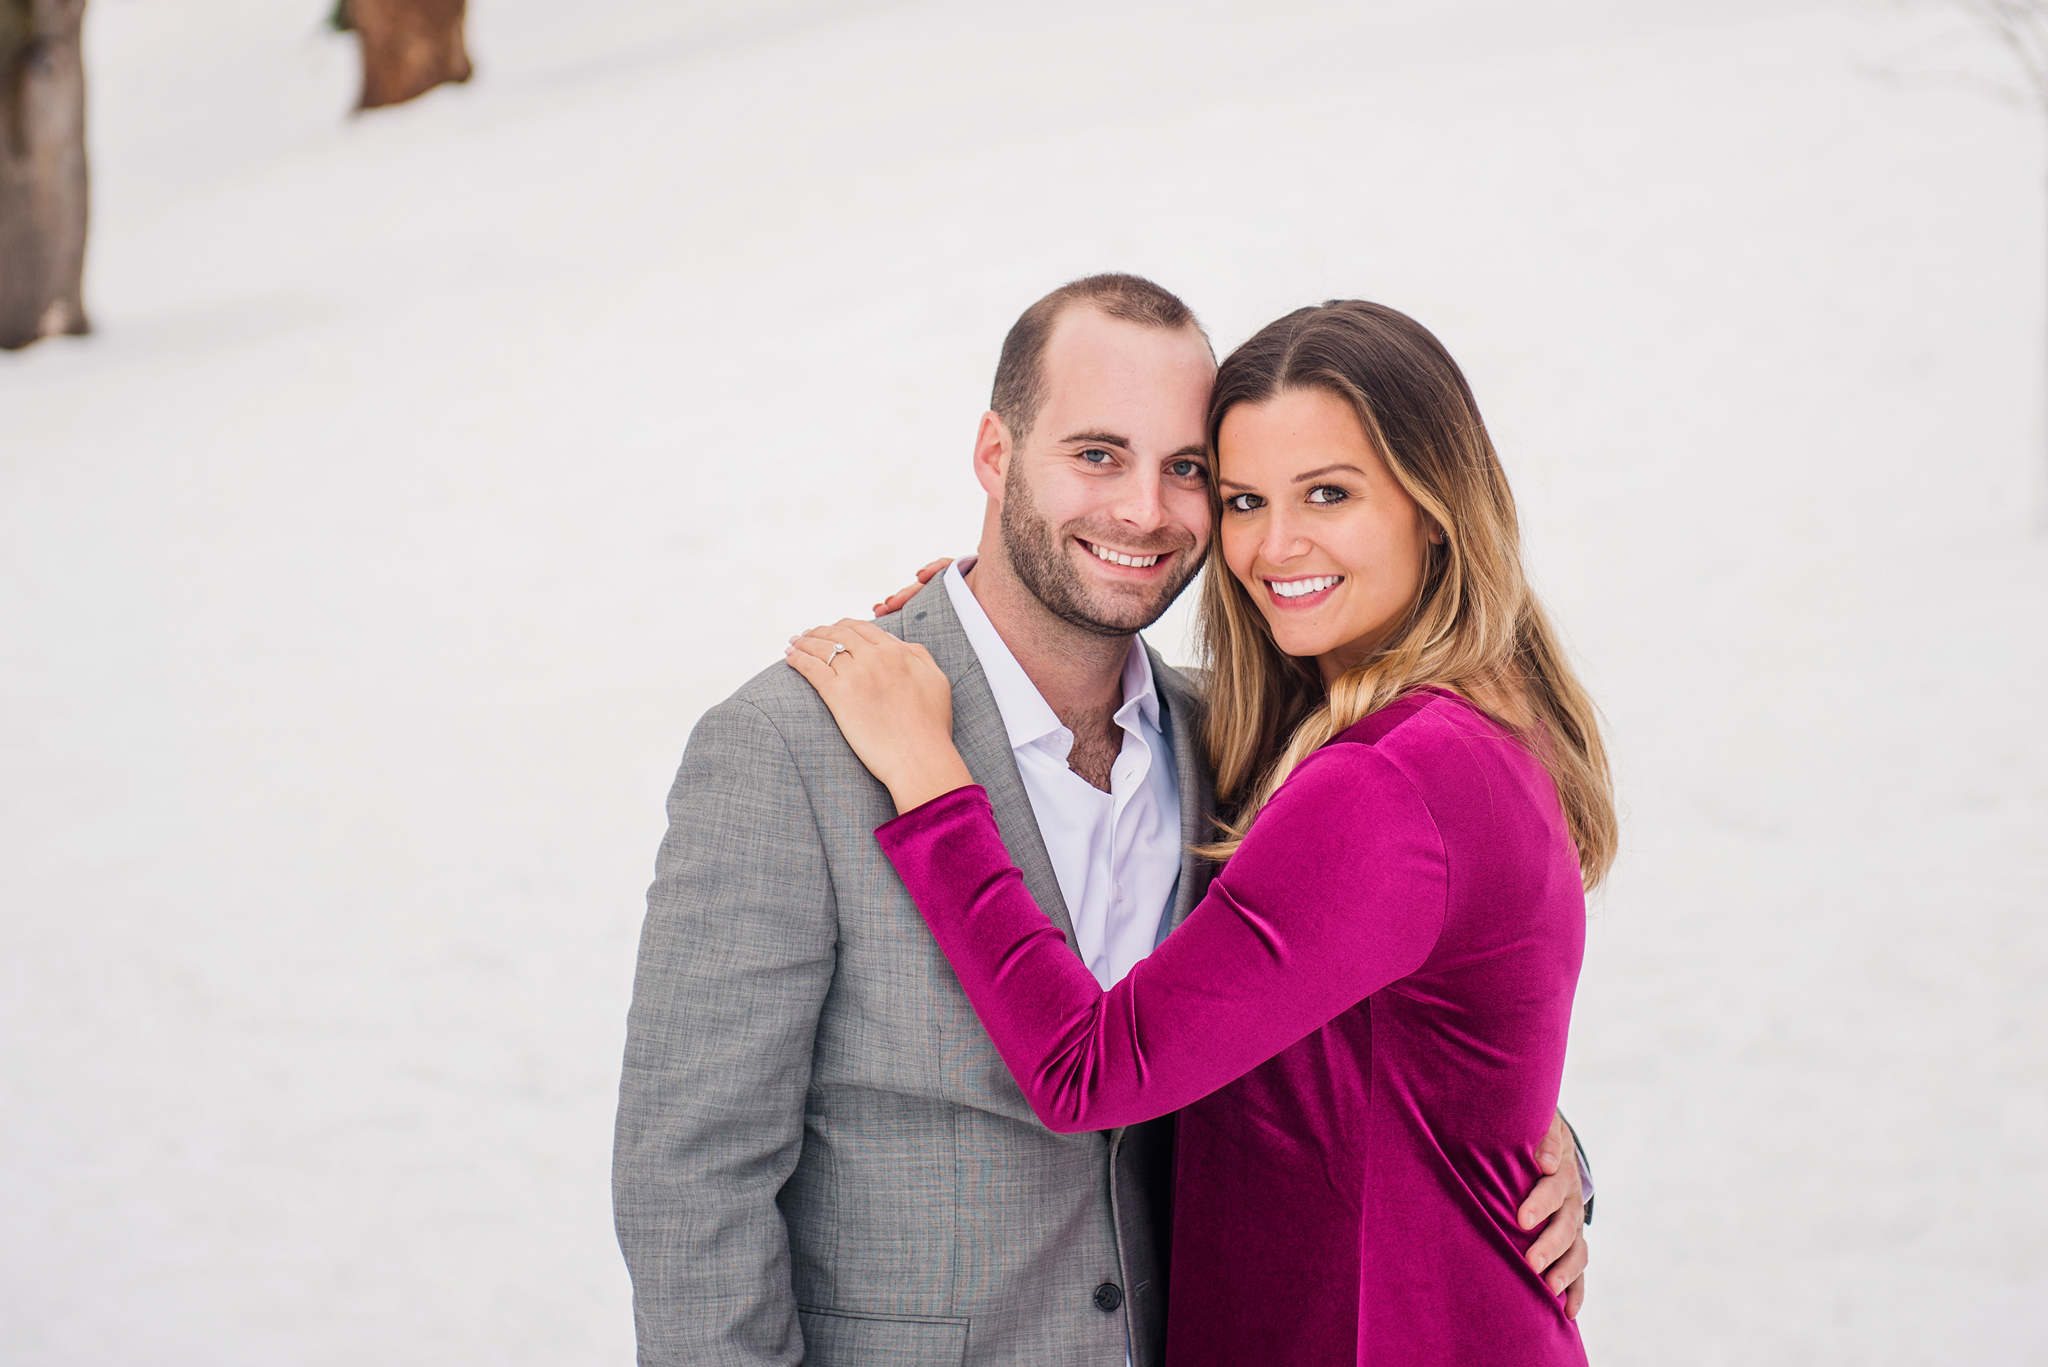 Webster_Park_Engagement_Session_Rochester_NY_photographer_DSC_6403.jpg